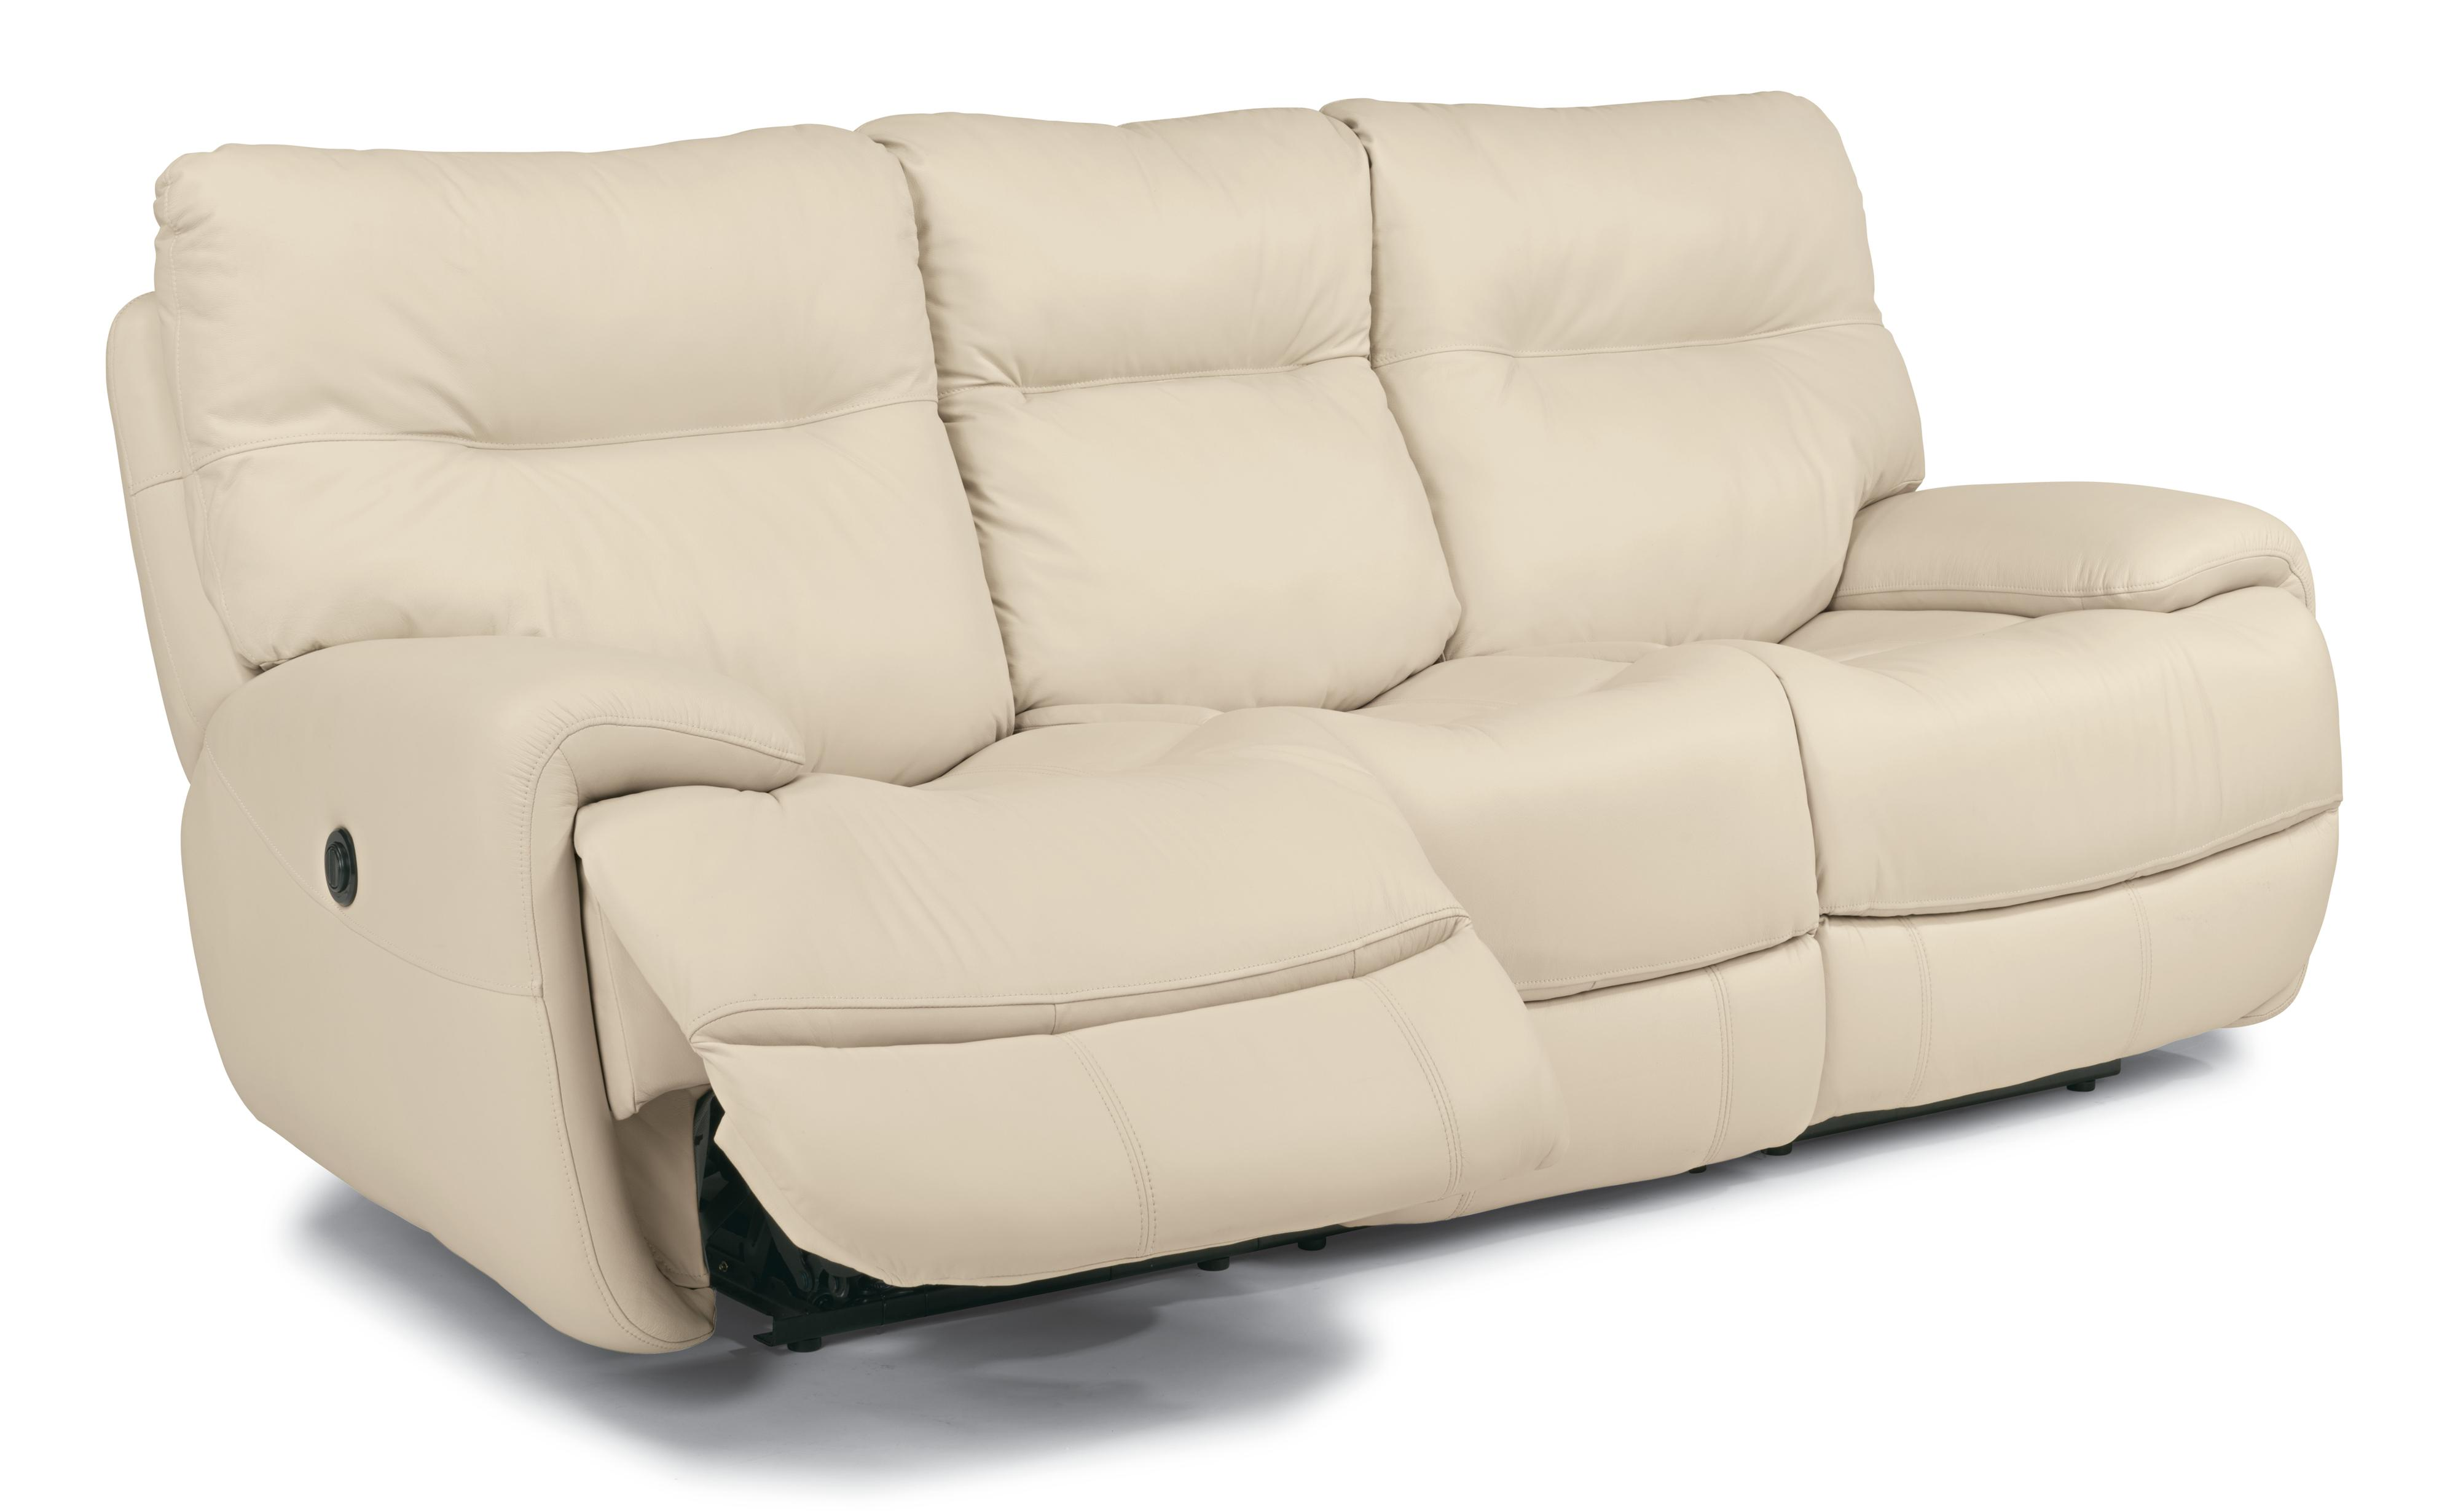 Flexsteel Latitudes - Evian Power Reclining Sofa - Item Number 1447-62P-675  sc 1 st  Wayside Furniture : large recliner chairs - islam-shia.org